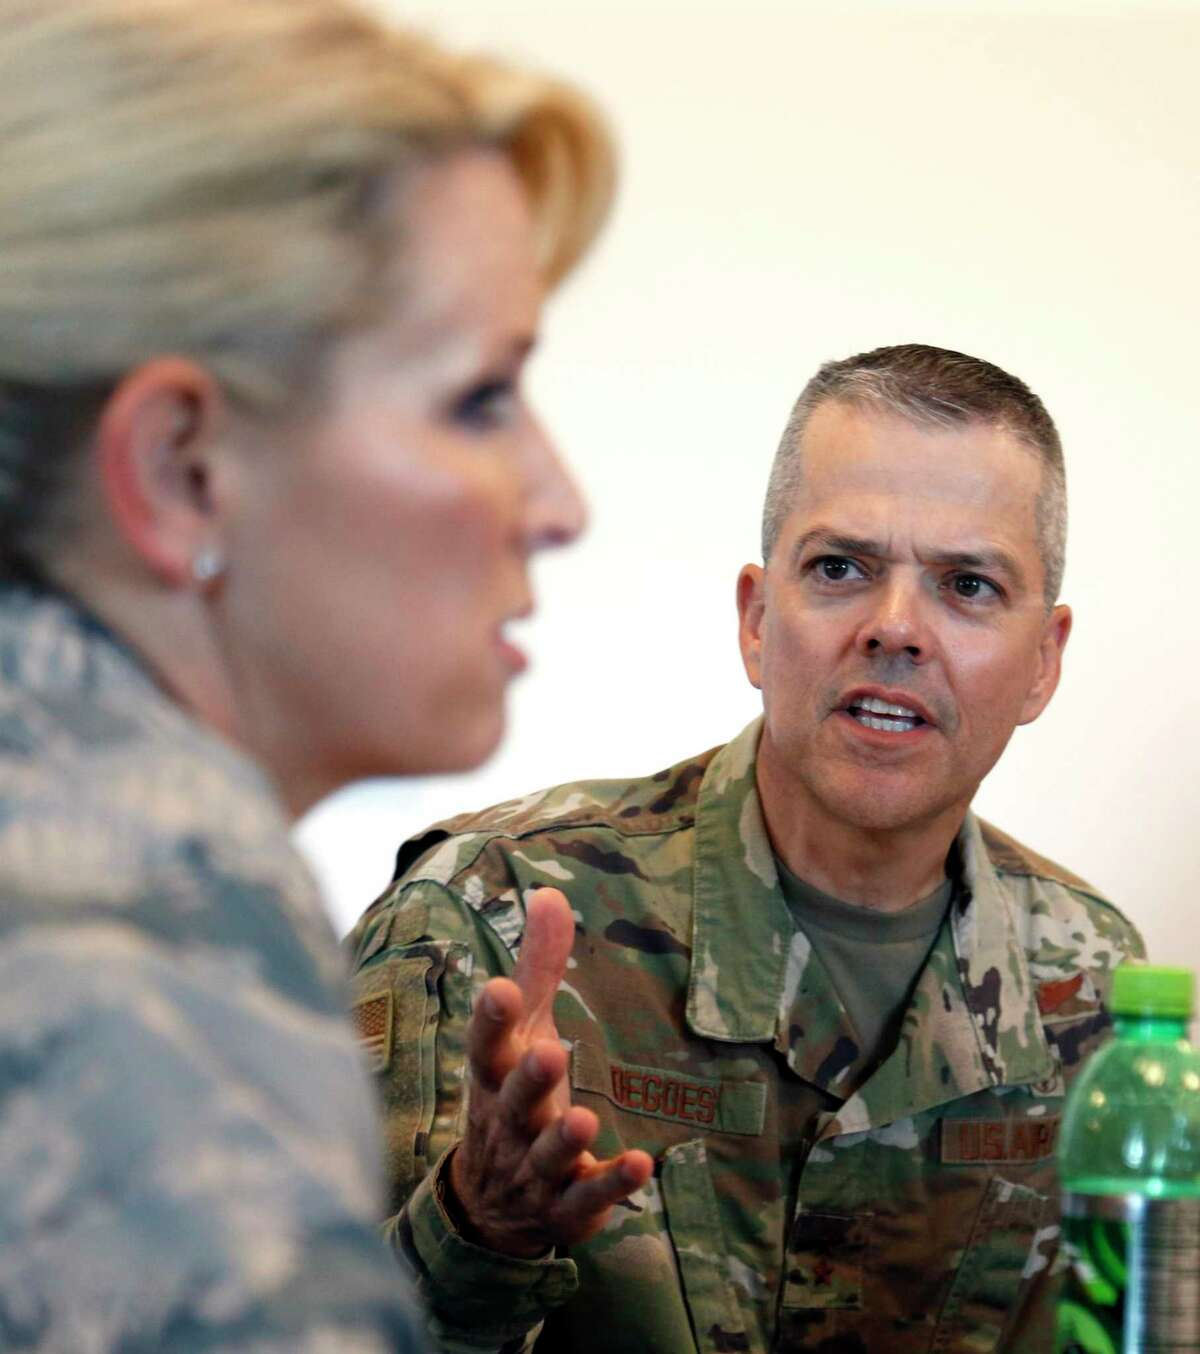 Brig. Gen. Laura Lenderman listens as the commander of the 59th Medical Wing, Maj. Gen. John DeGoes, answers a question as Joint Base San Antonio dealt with mold problems at base housing in 2019. DeGoes is leading efforts to keep COVID-19 cases isolated among Air Force recruits in basic training.